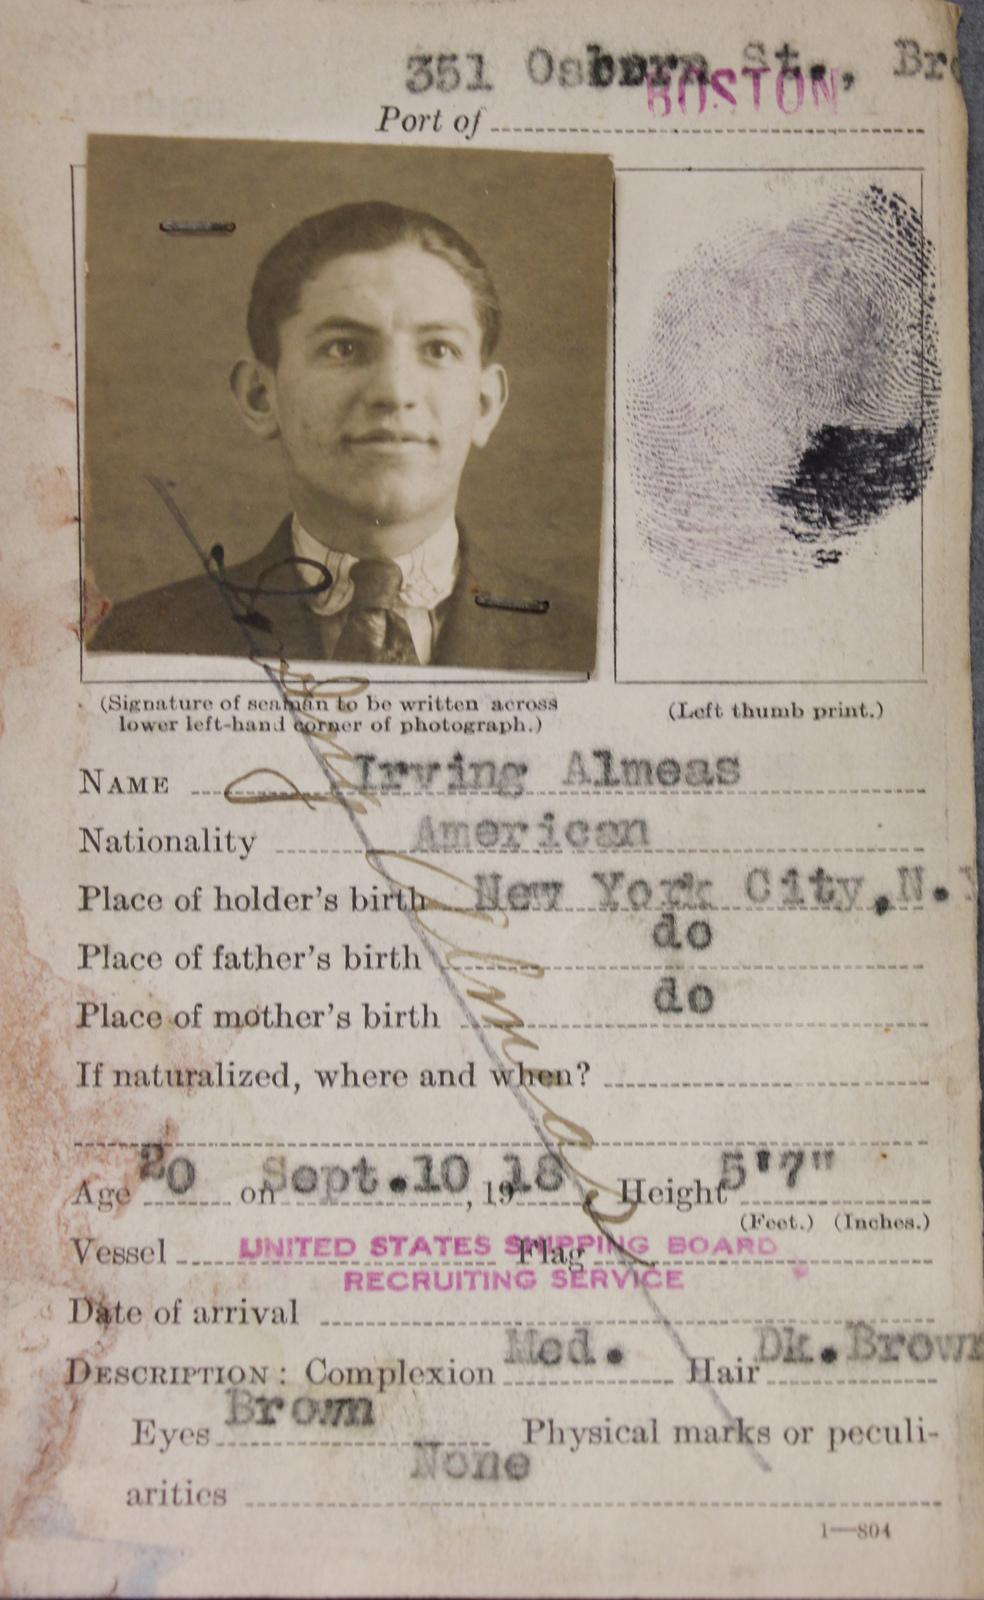 Seamen's Identification Card for Irving Almeas - U S